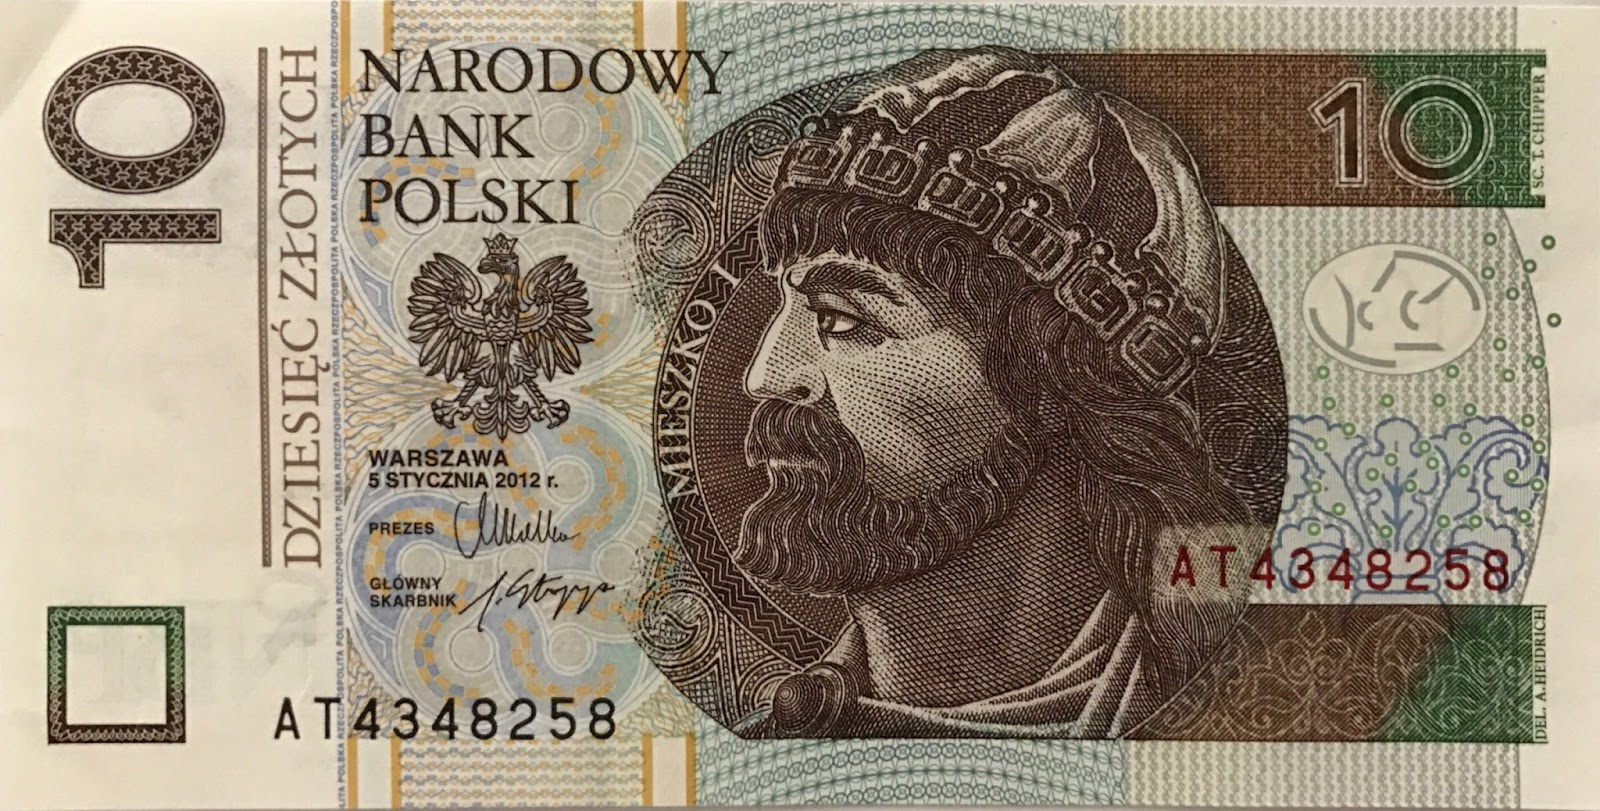 Foreign Banknotes: Poland Banknote, 2012 Series (